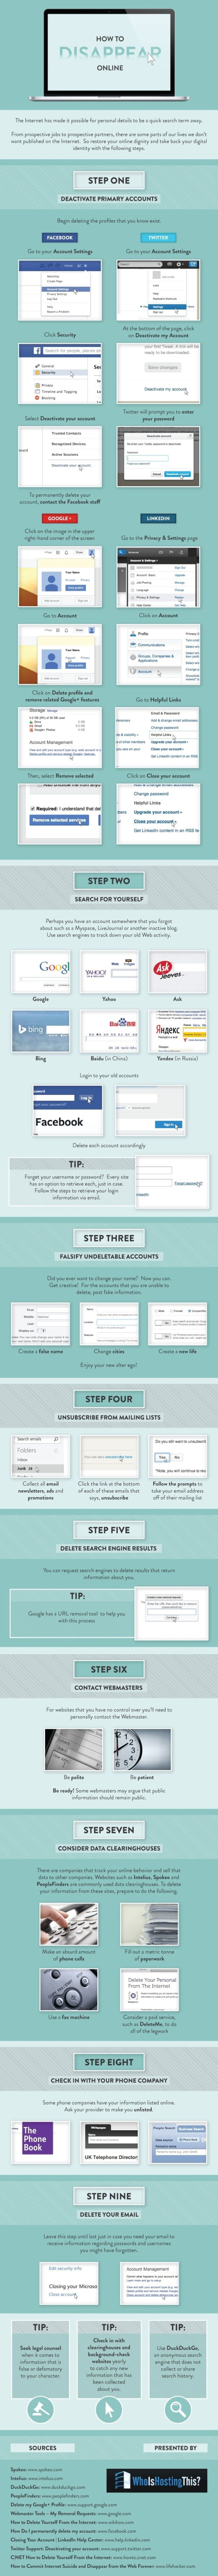 How to Disappear Online (infographic)